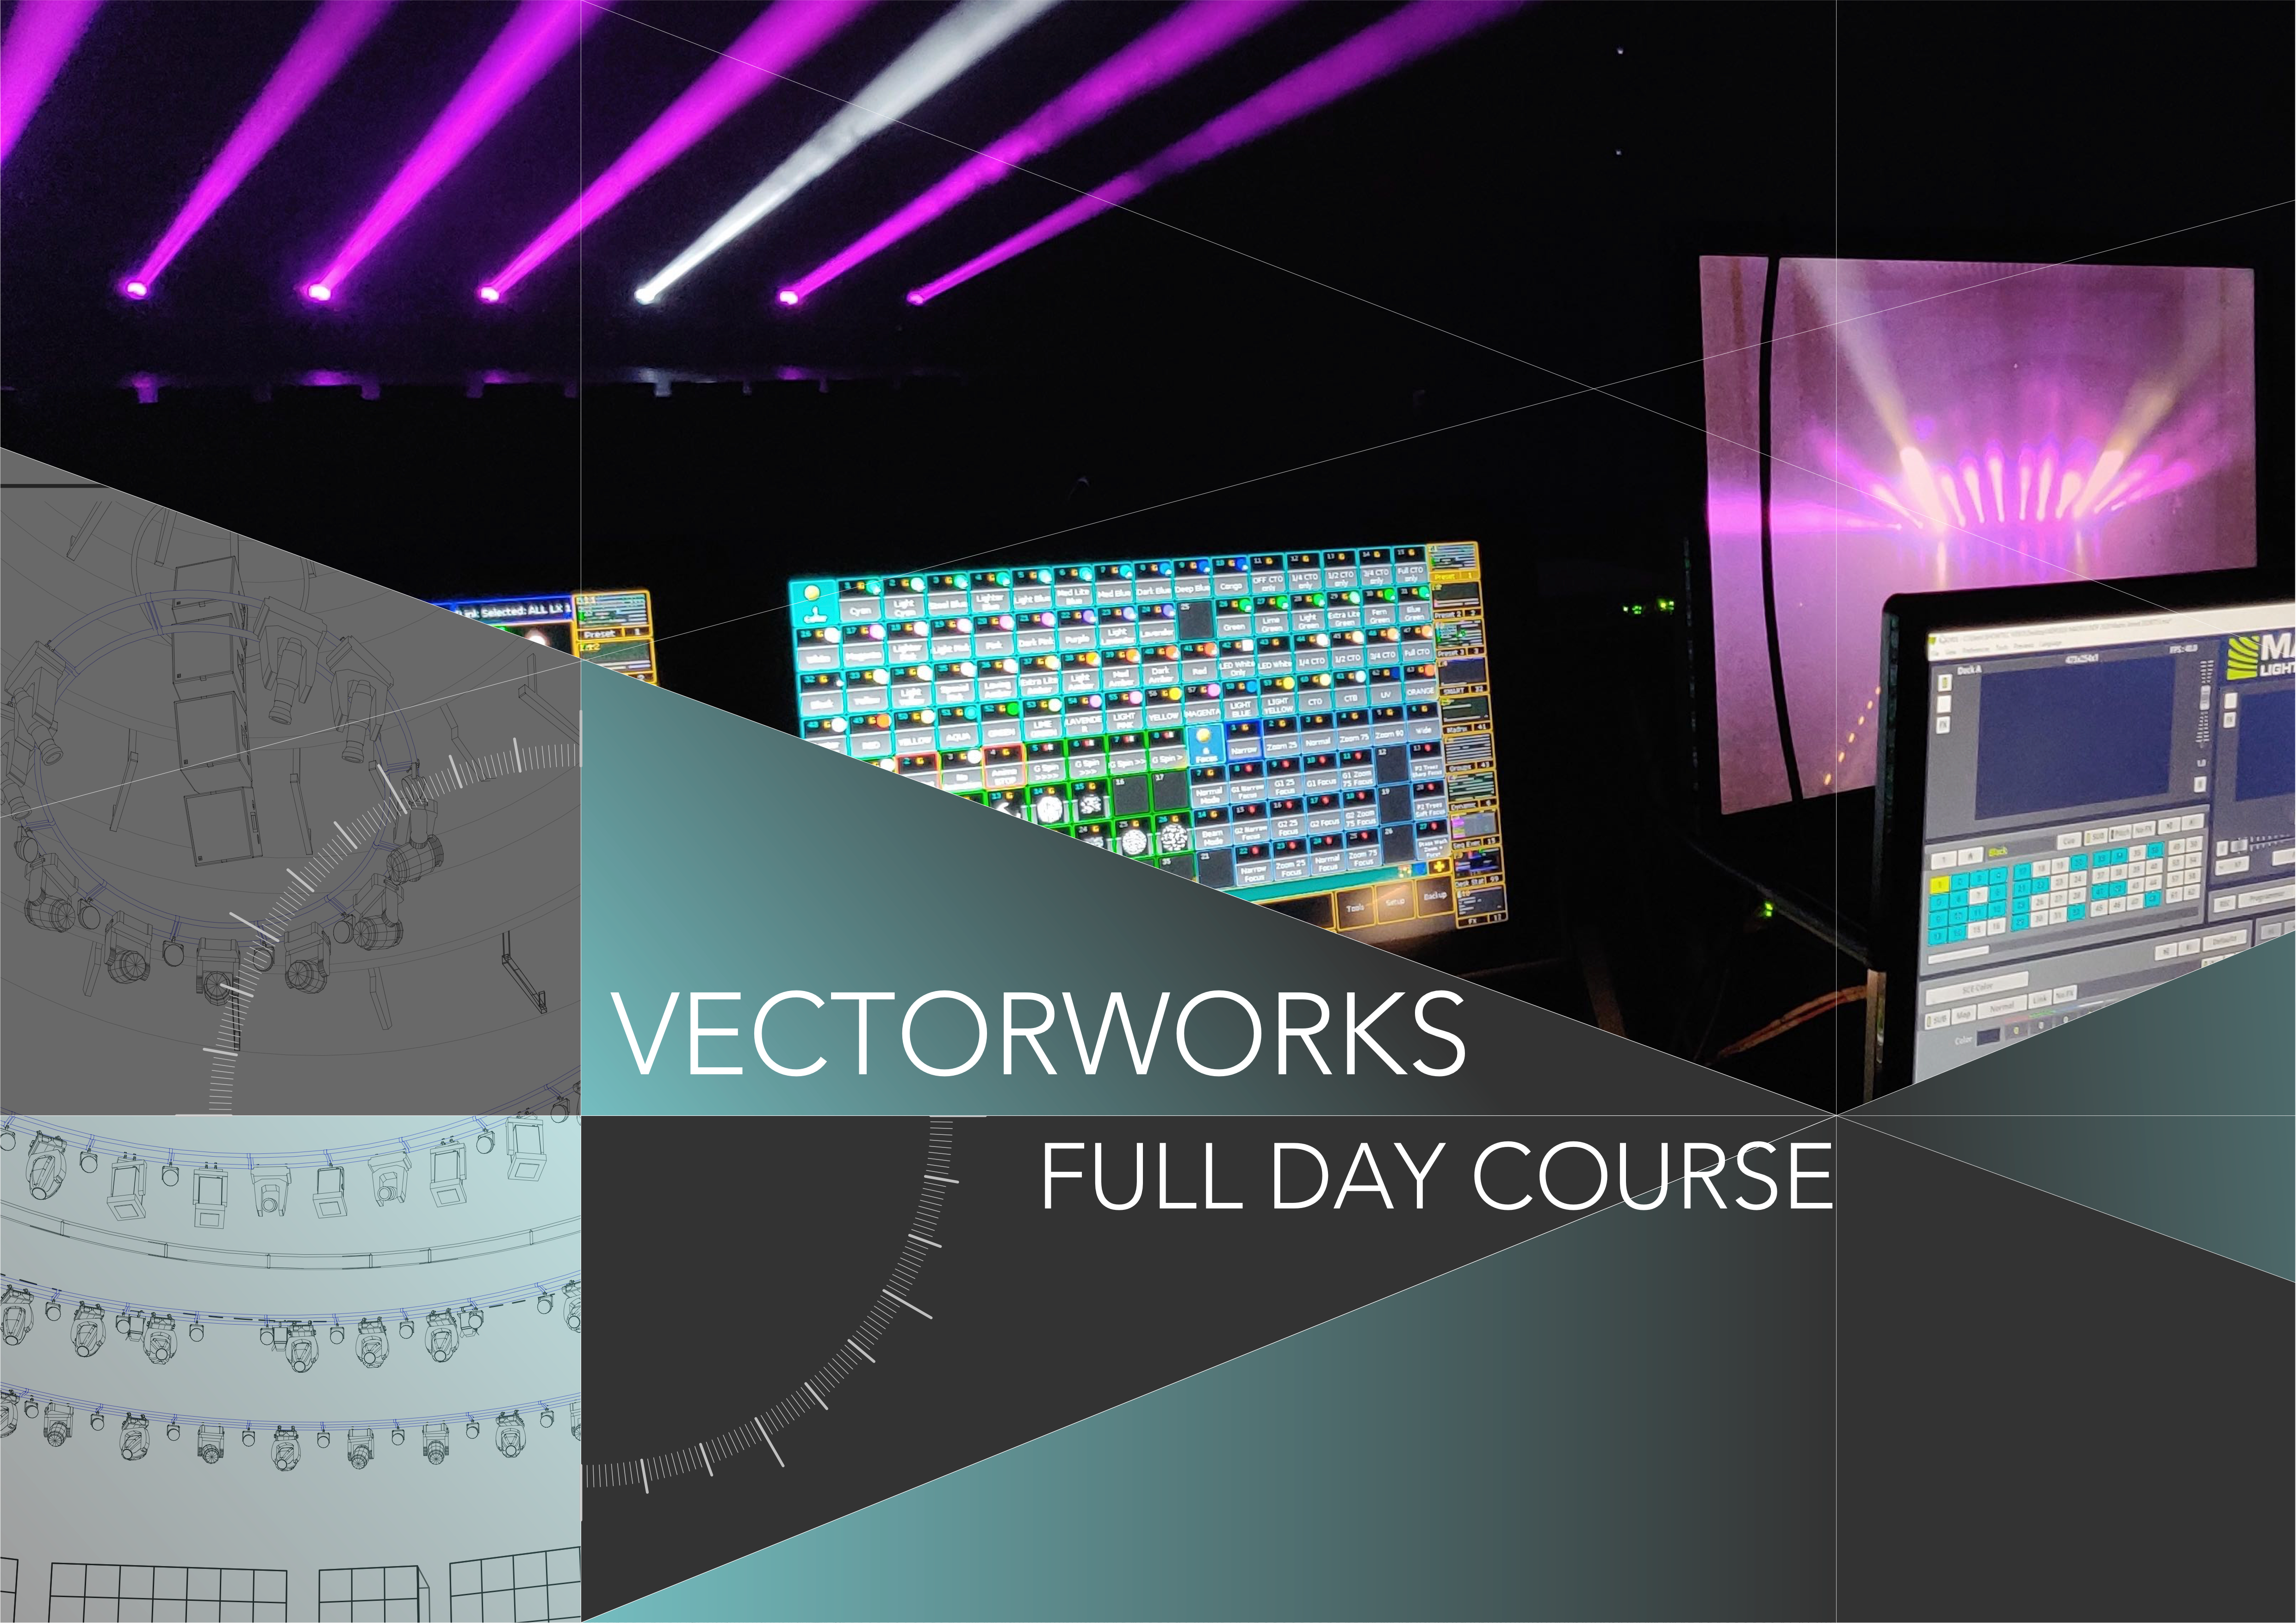 Vectorworks Full Day Course